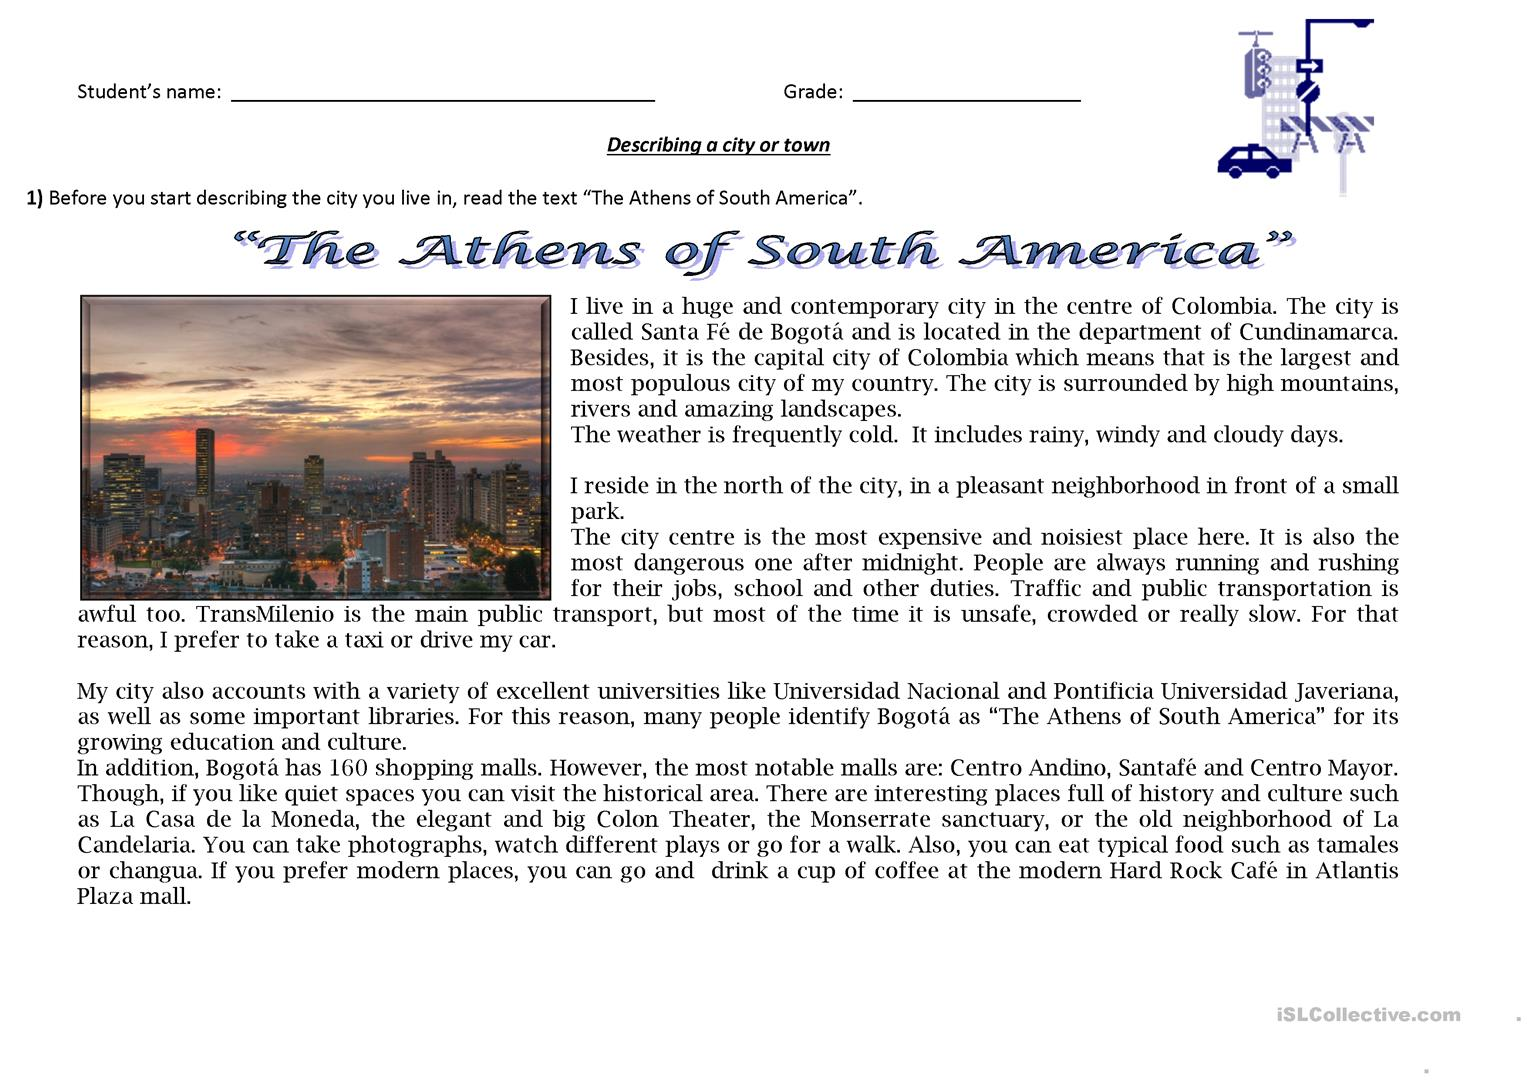 Reading And Writing The Athens Of South America Describing A City Or Town Worksheet